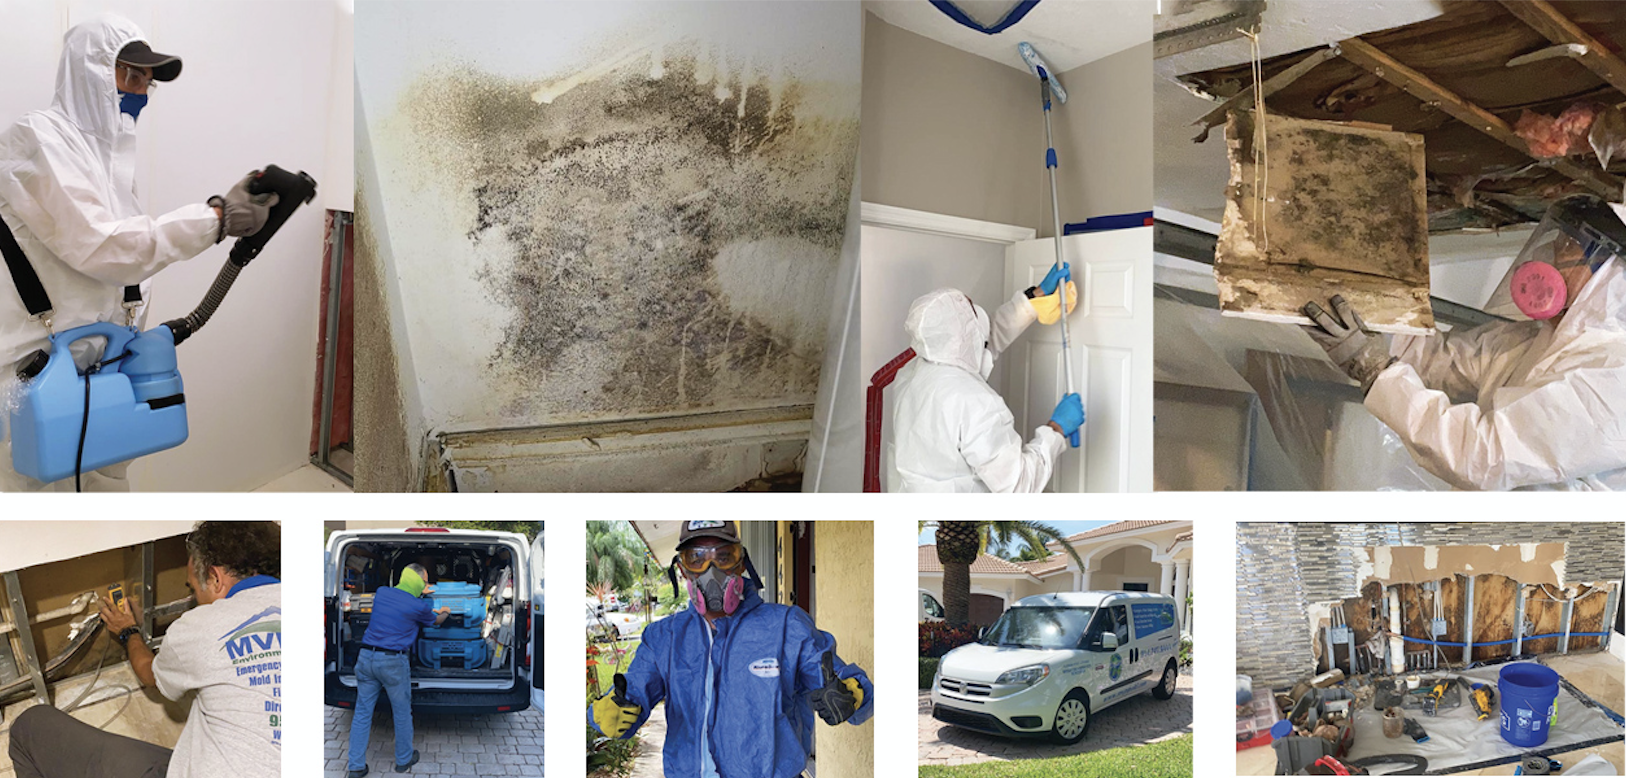 Precise Mold Remediation Top of the Line Machines